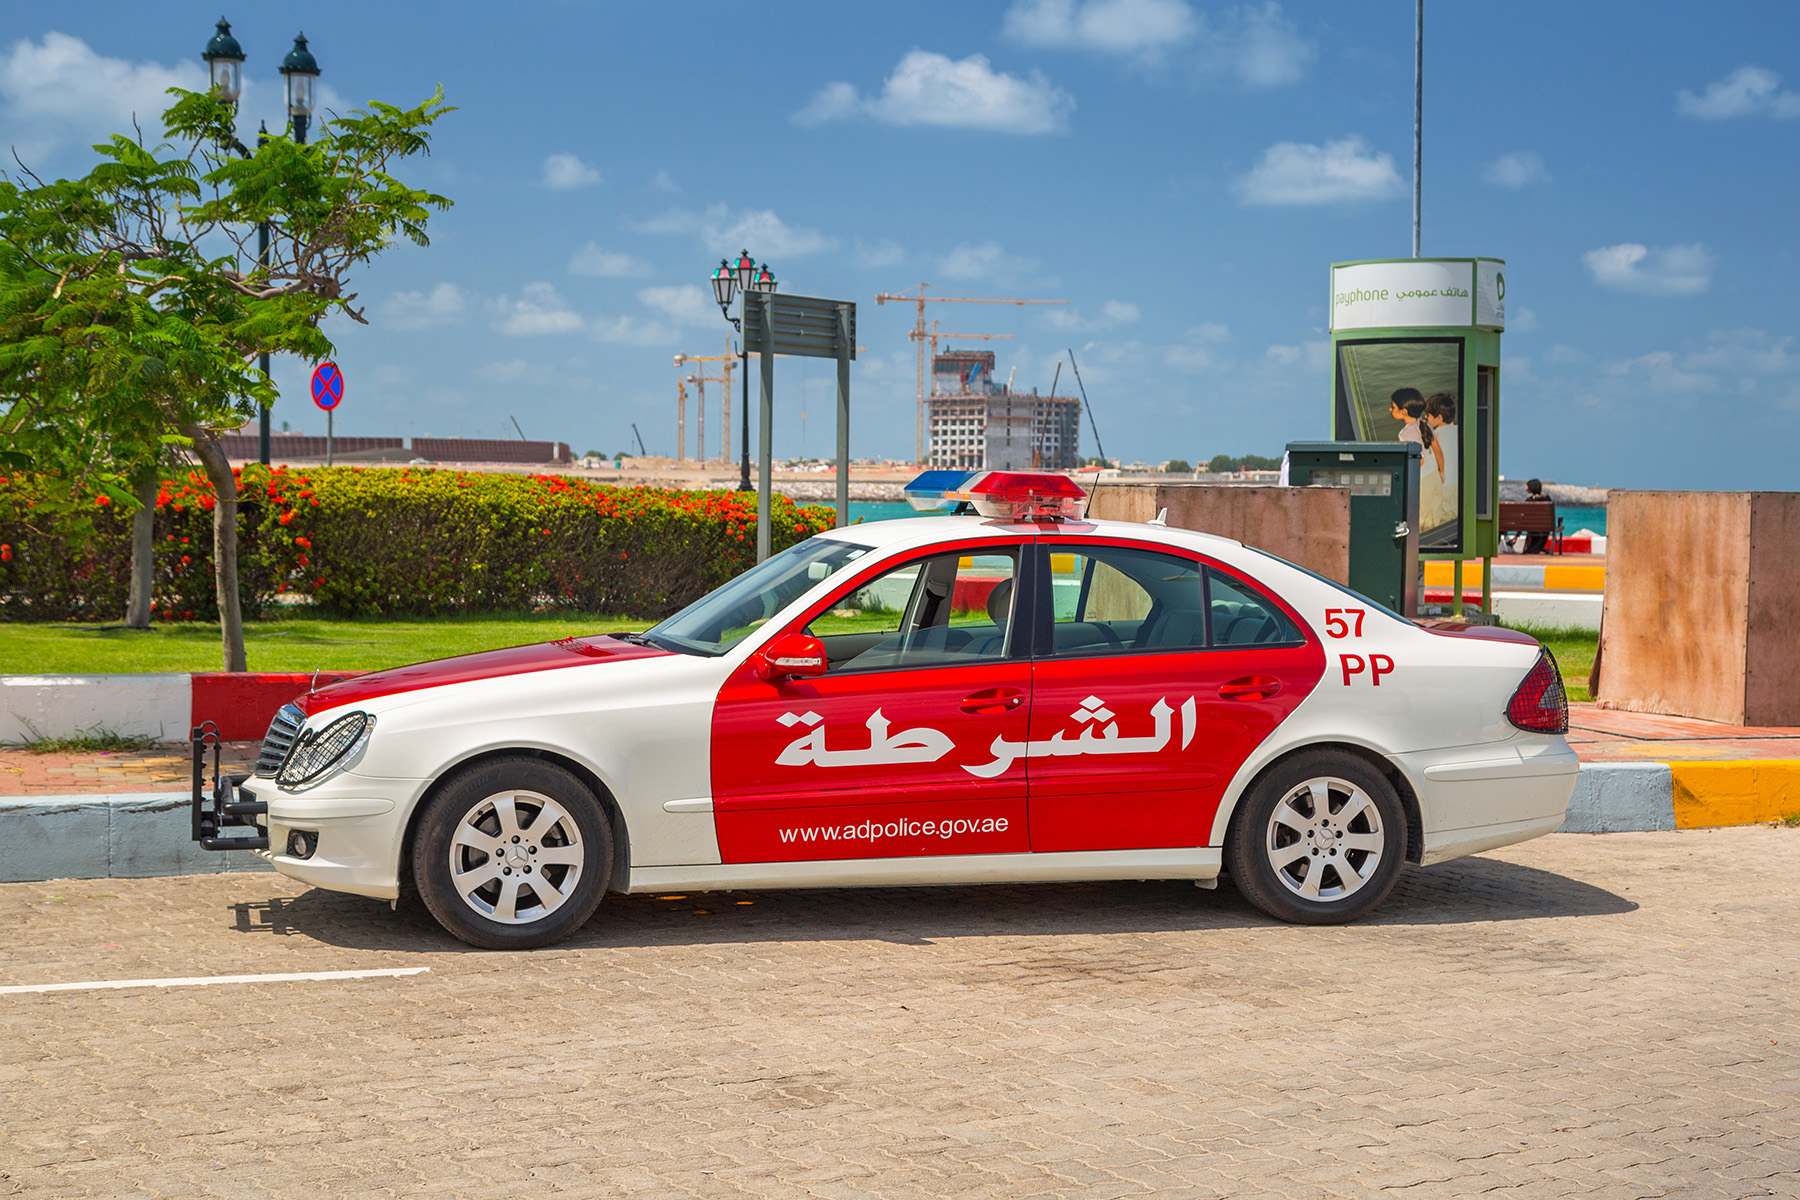 Police in the UAE